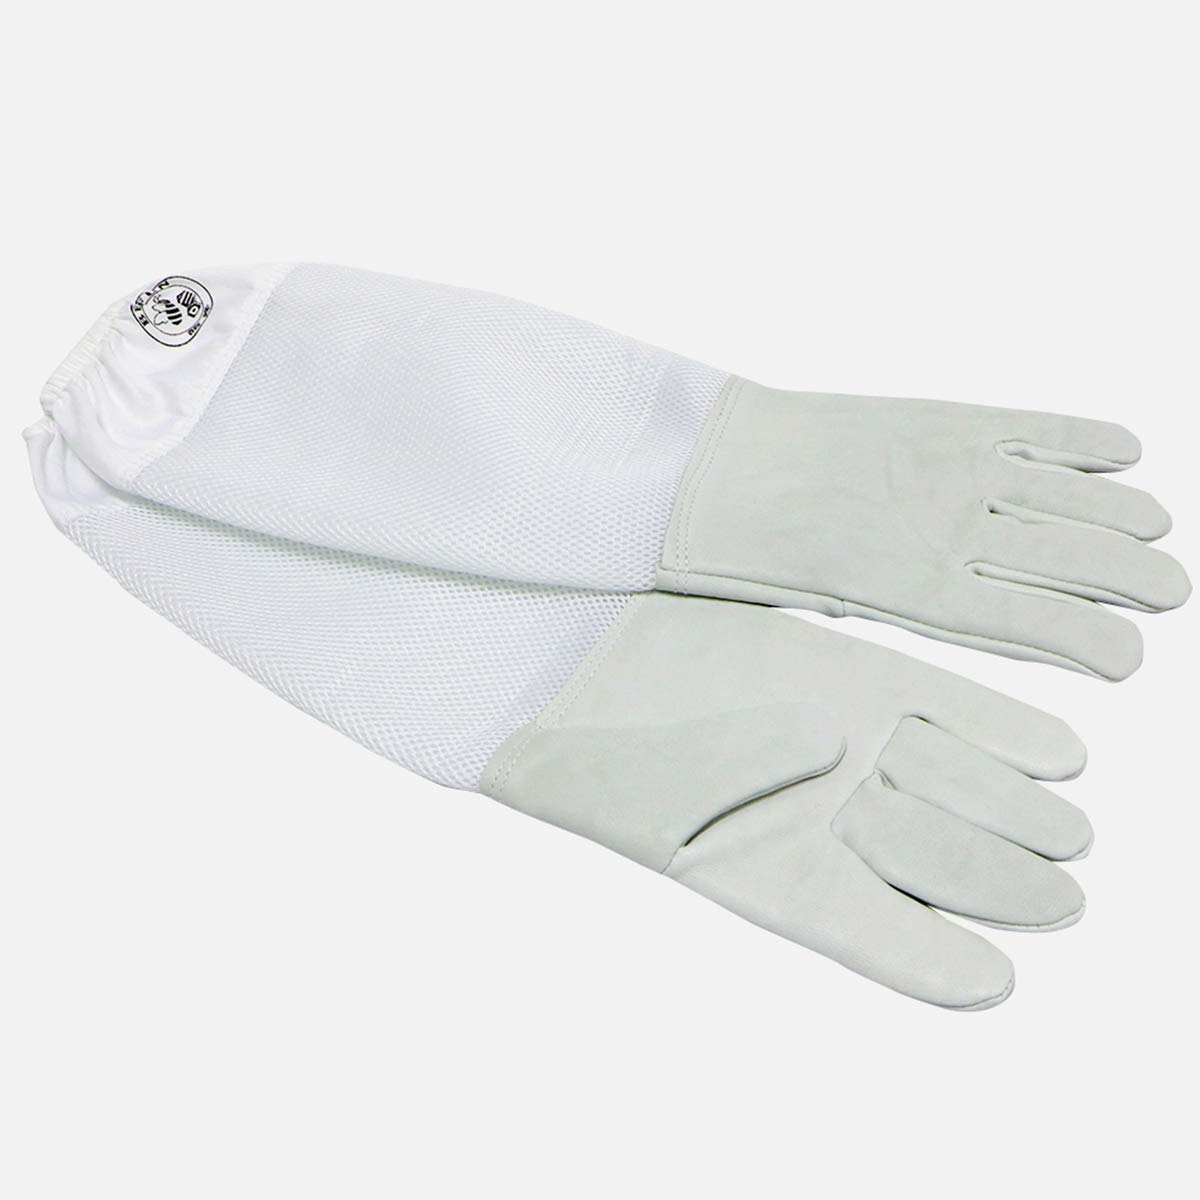 Beekeeping Leather Gloves - Beefun Goatskin Bee Gloves Canvas Protective Equipment with Vented Long Sleeves, White (L)